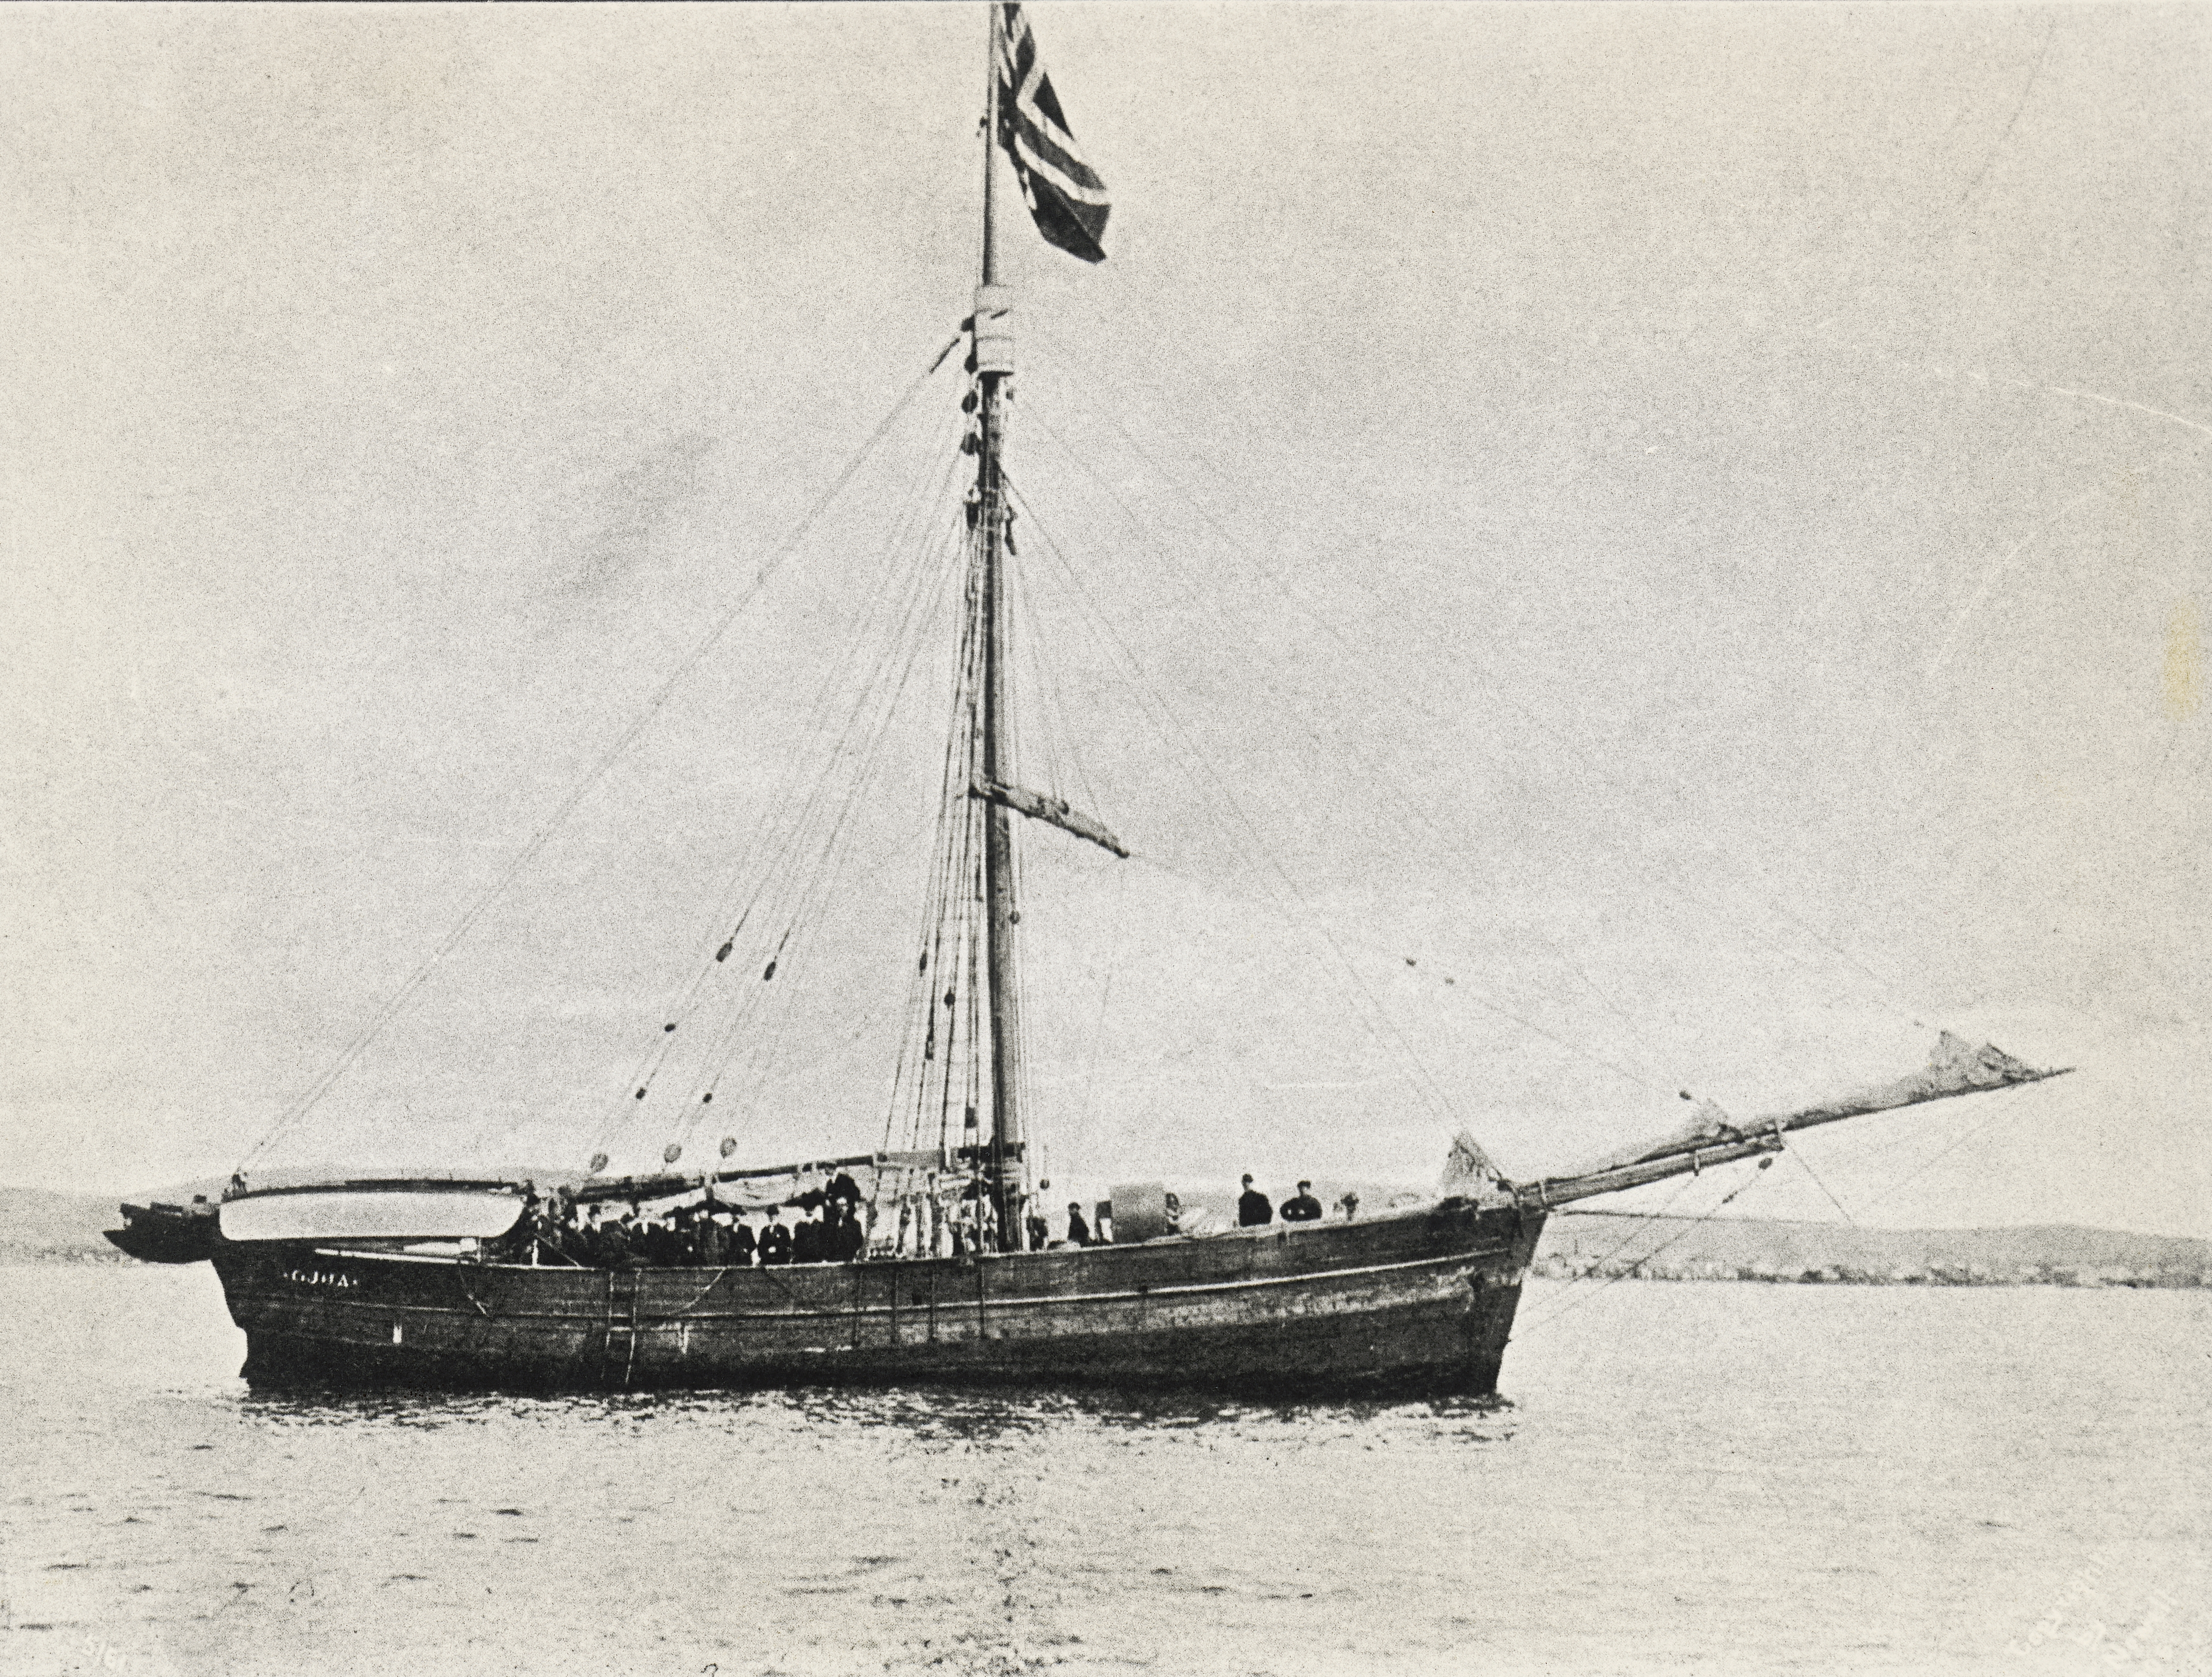 The Gjoa ship that Roald Amundsen used to sail through and open the Northwest Passage between the Atlantic and the Pacific, arriving in Nome (Alaska) August 30, 1906,